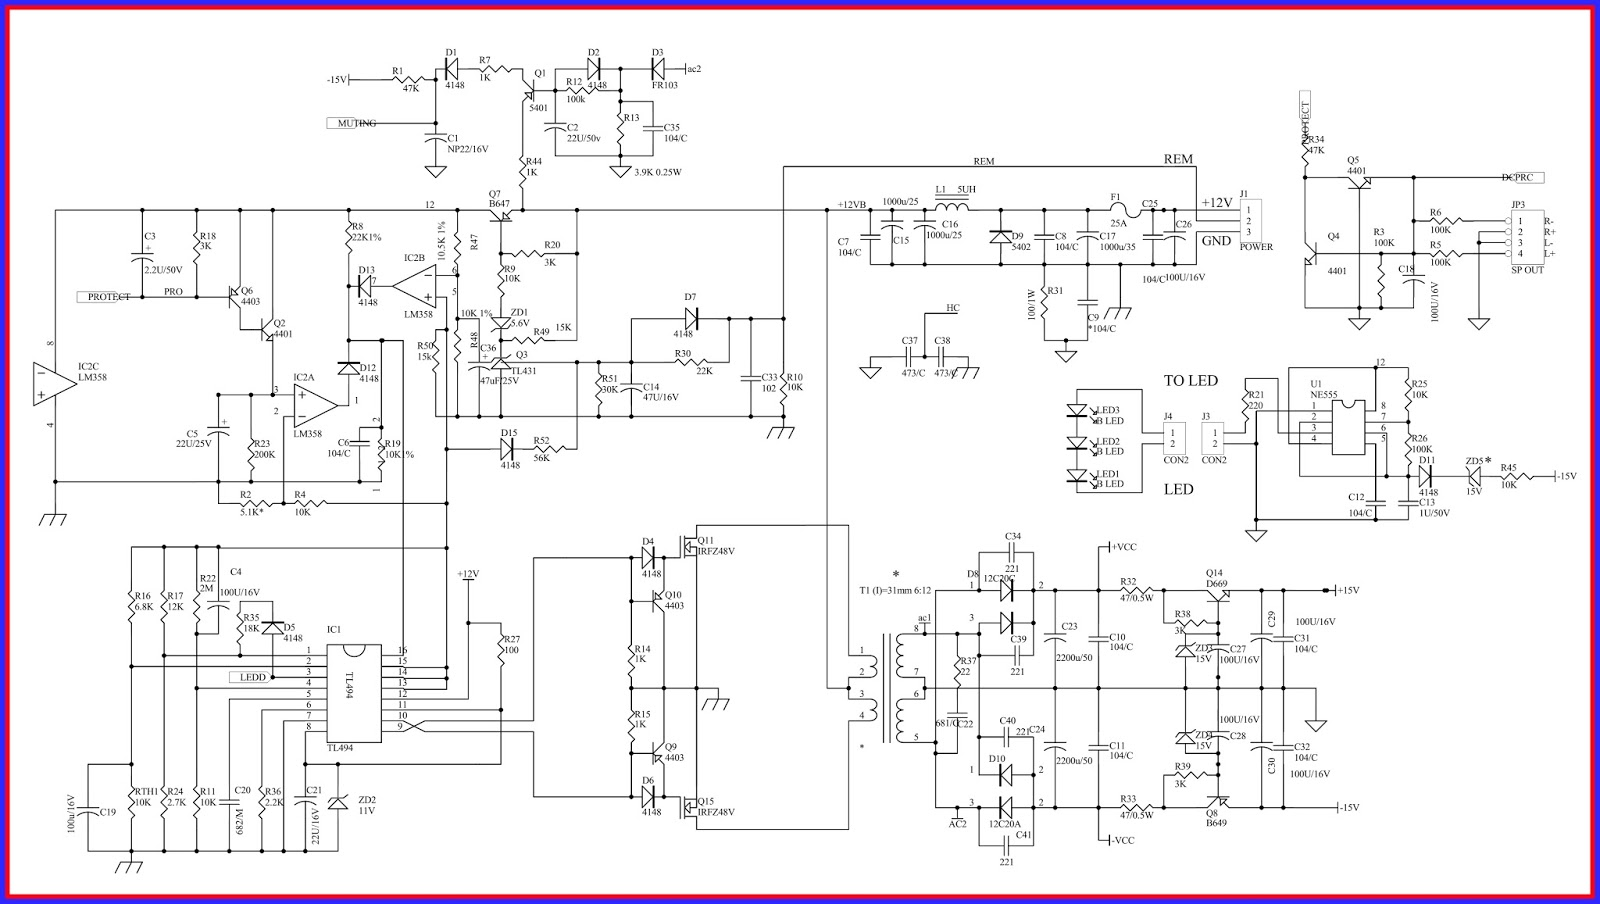 Peachy Way Speaker Circuit Diagram Speaker Crossover 3Way 8 Ohm 8004500 Wiring Digital Resources Bemuashebarightsorg